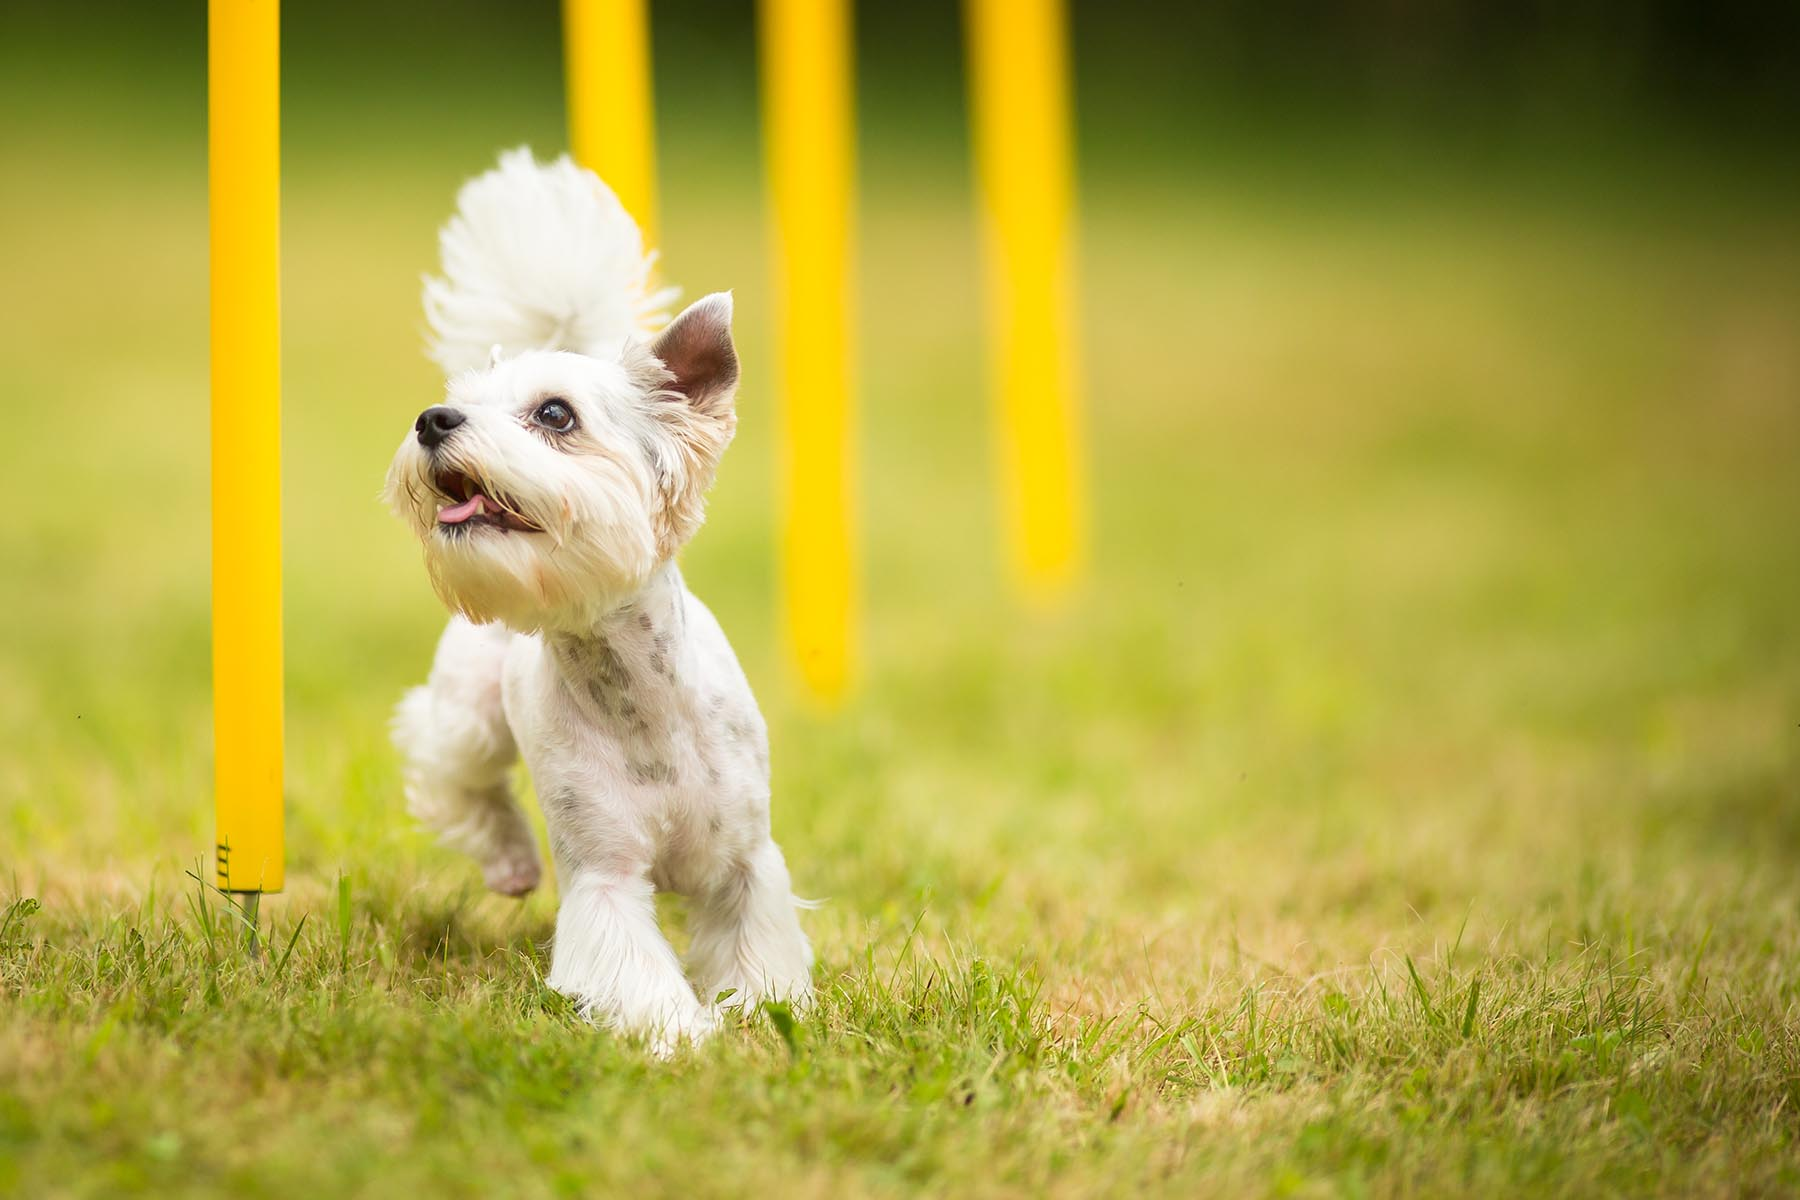 Cute Little Dog Doing Agility Drill   Running Slalom, Being Obed